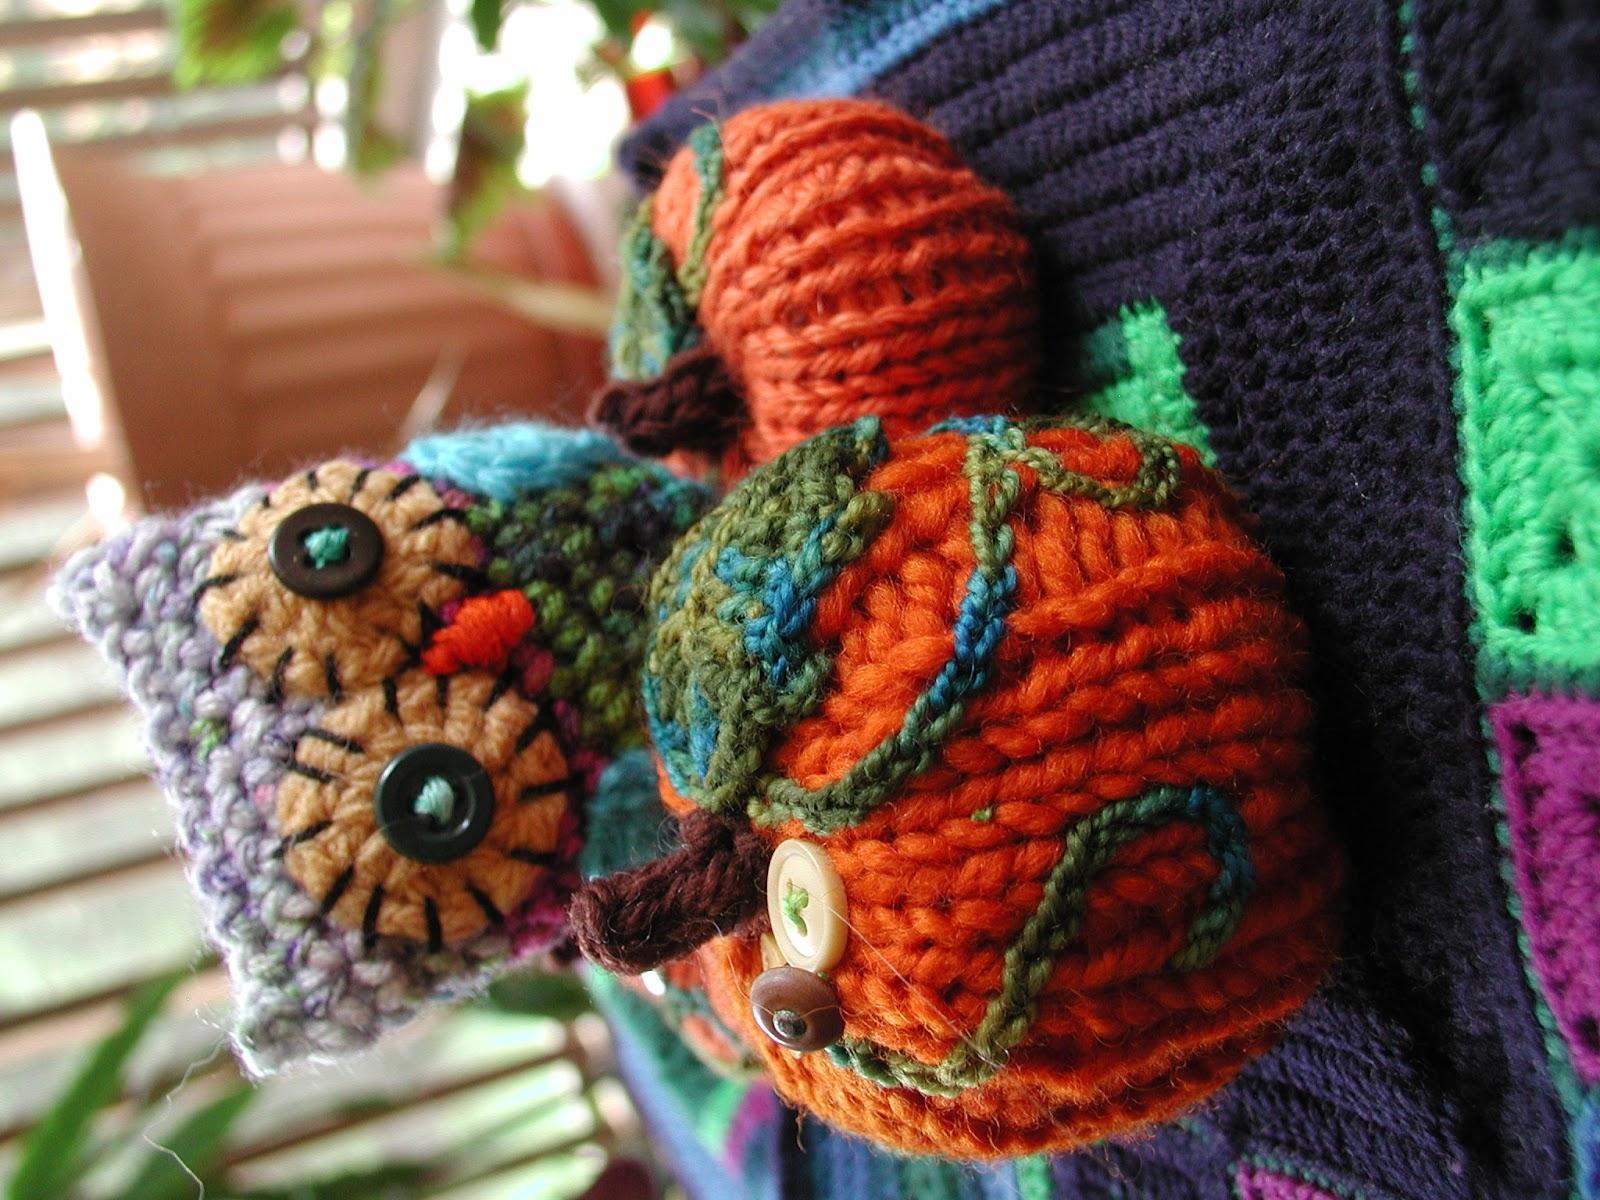 Explore Crochet Knitting, Knitted Owls, and more!